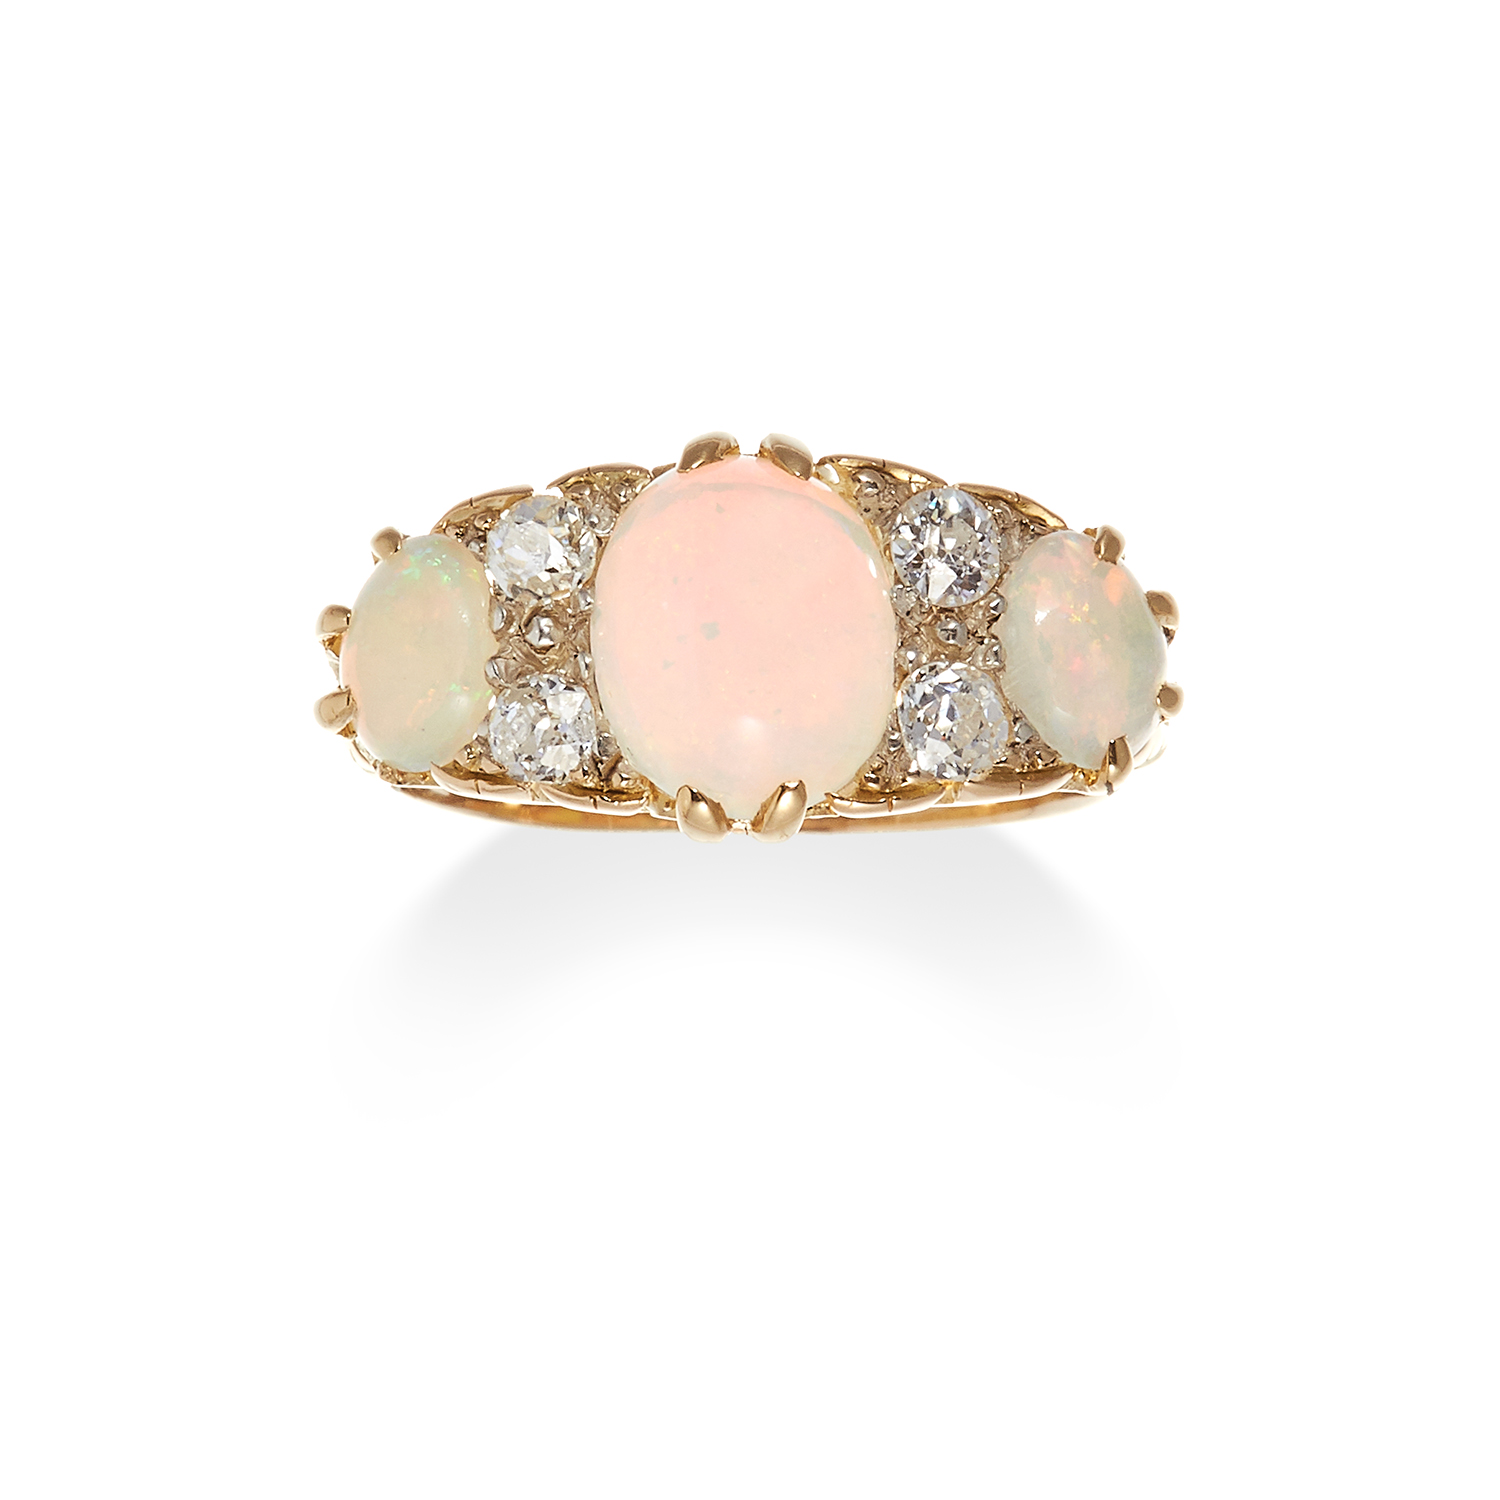 Los 36 - AN ANTIQUE OPAL AND DIAMOND RING in 18ct yellow gold, set with a trio of graduated oval cabochon